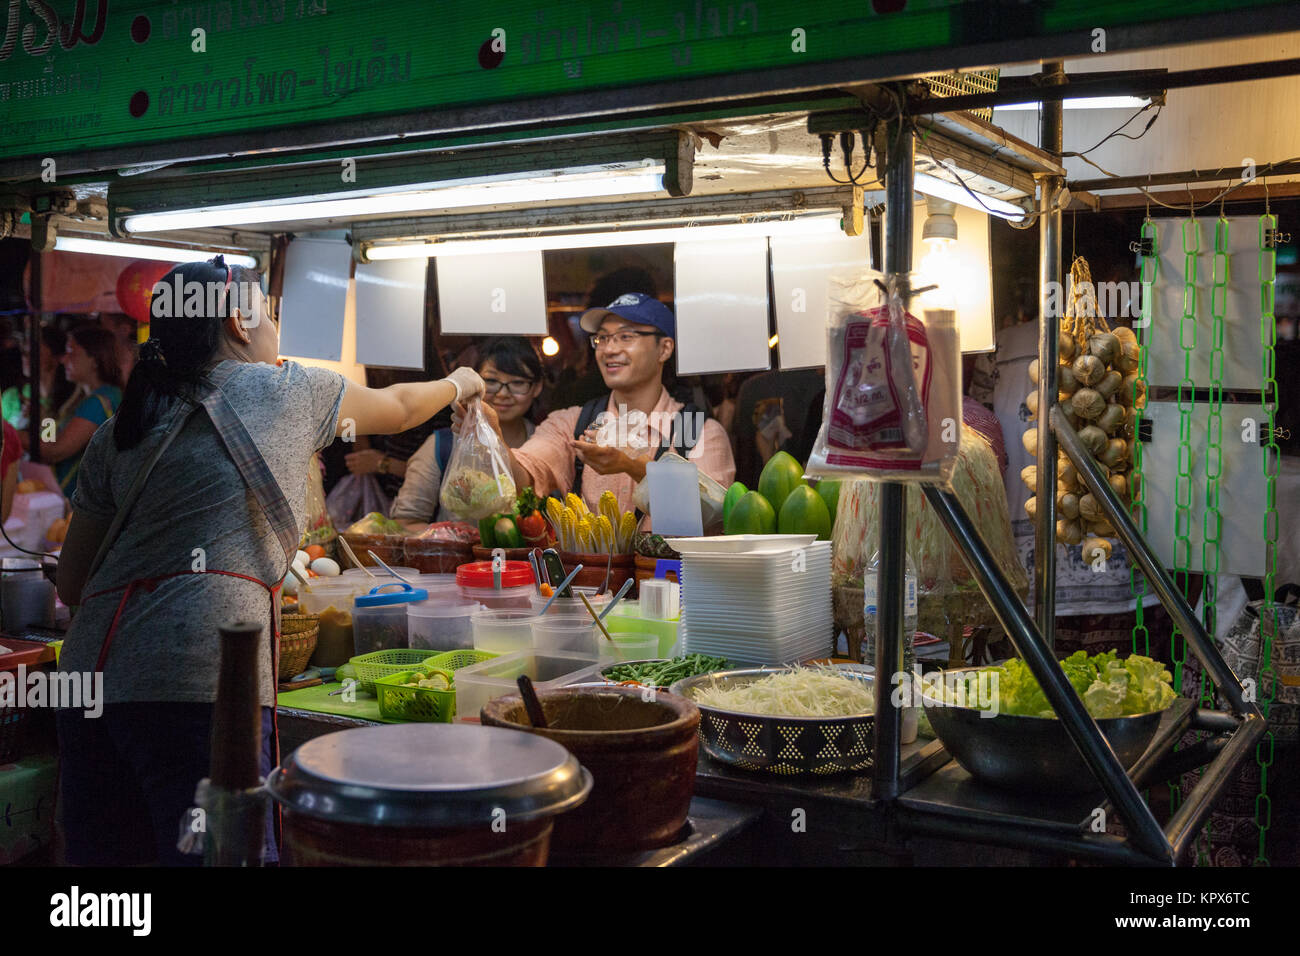 CHIANG MAI, THAILAND - AUGUST 27: Woman sells traditional Thai food at the Saturday Night Market (Walking Street) - Stock Image